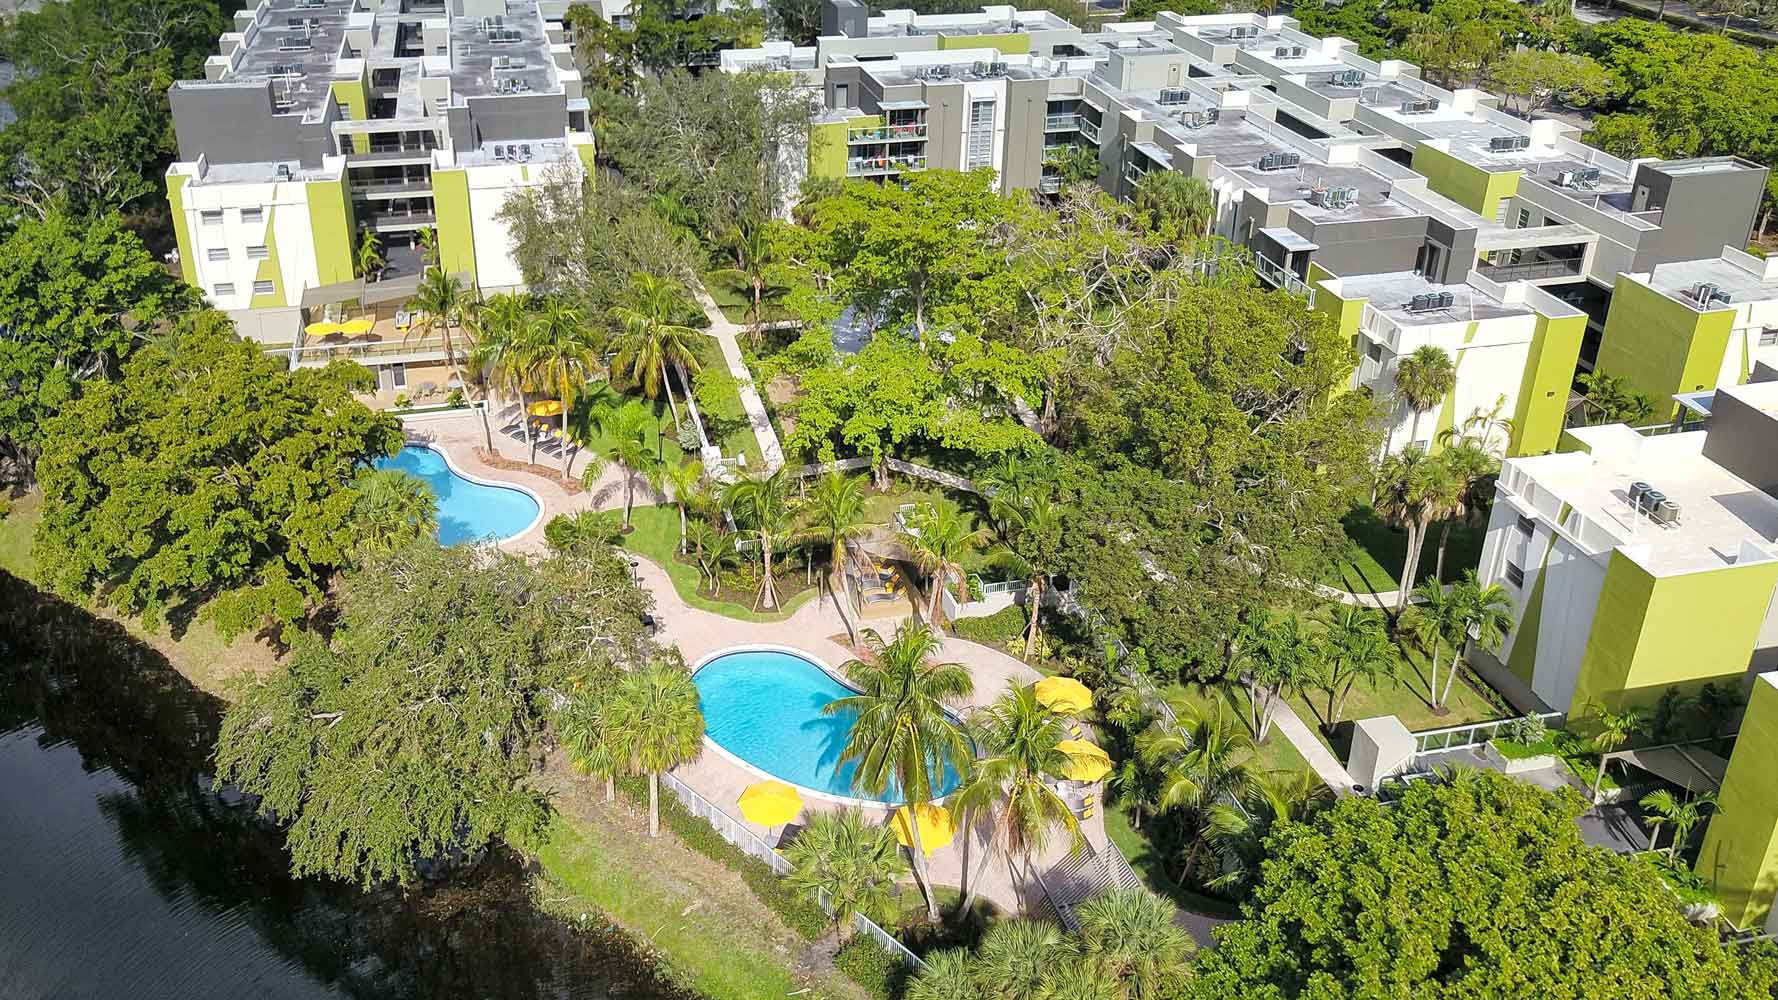 South Florida Landscaping at Nottingham Pine Apartments in Plantation, FL